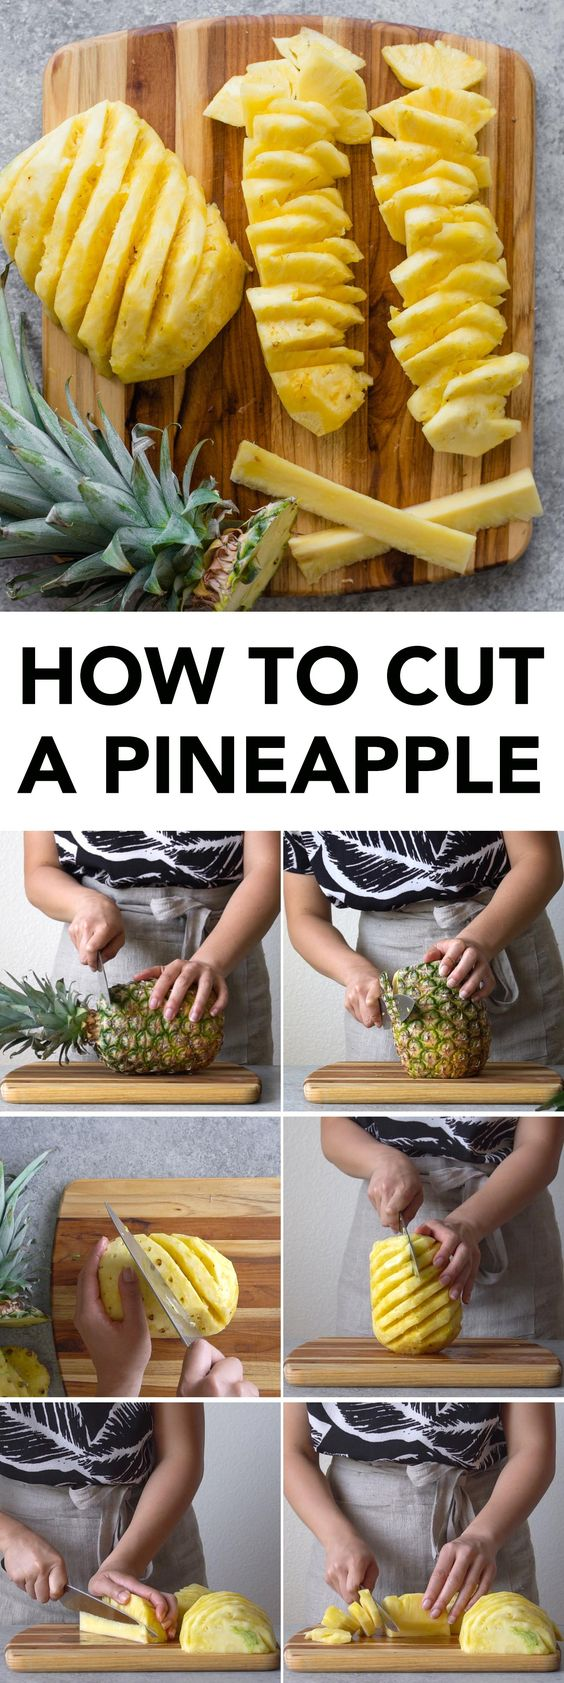 How to cut a pineapple: a step-by-step tutorial + video!